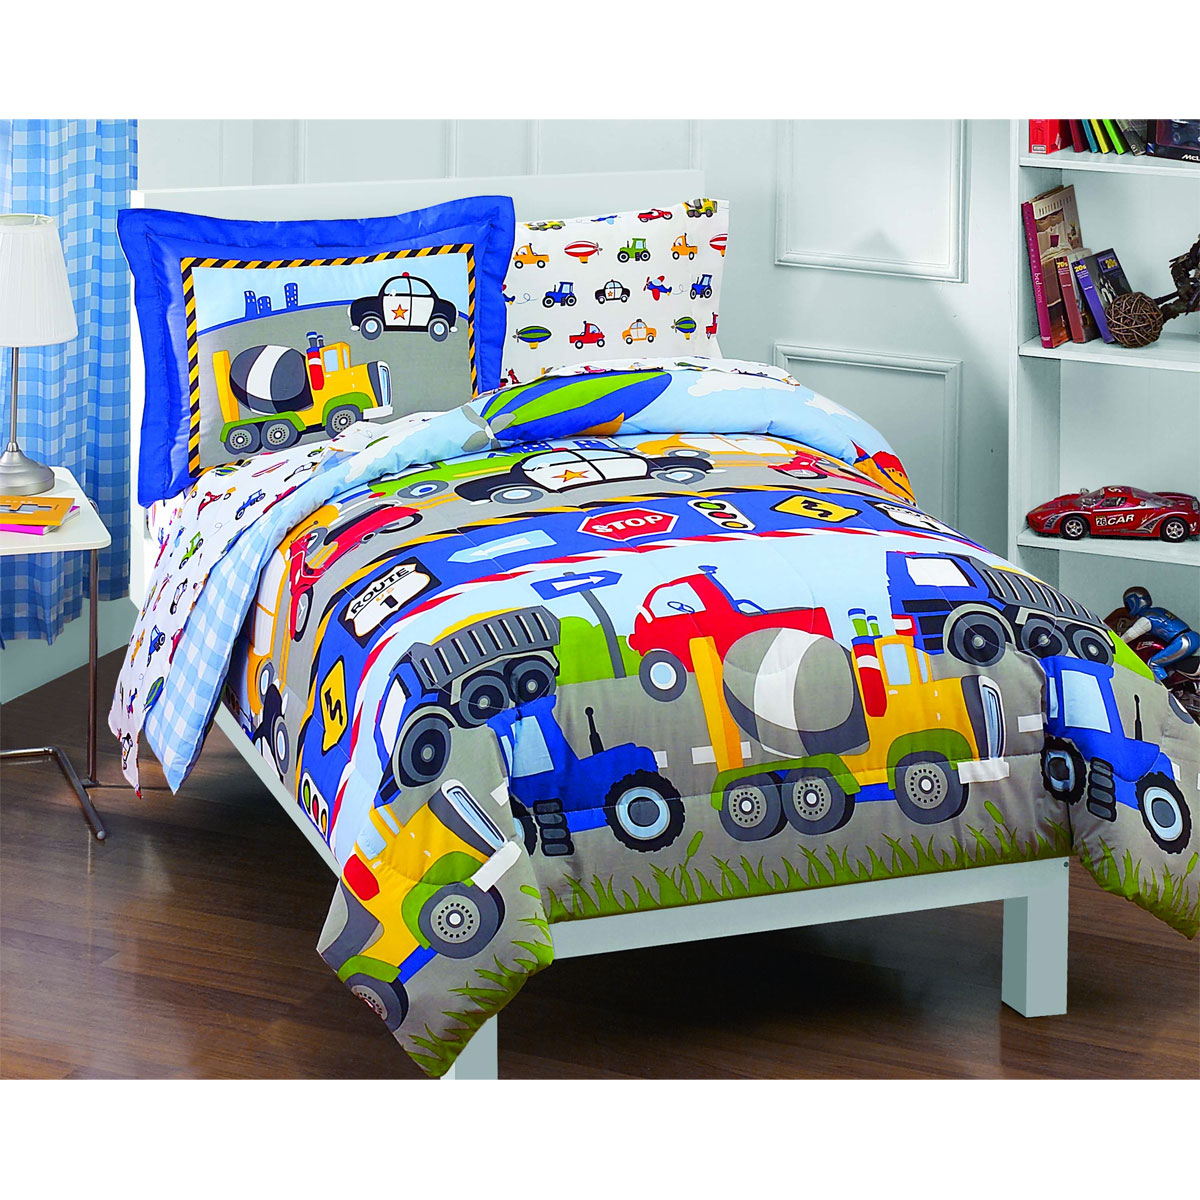 5pc Tractor Trucks Bedding Set